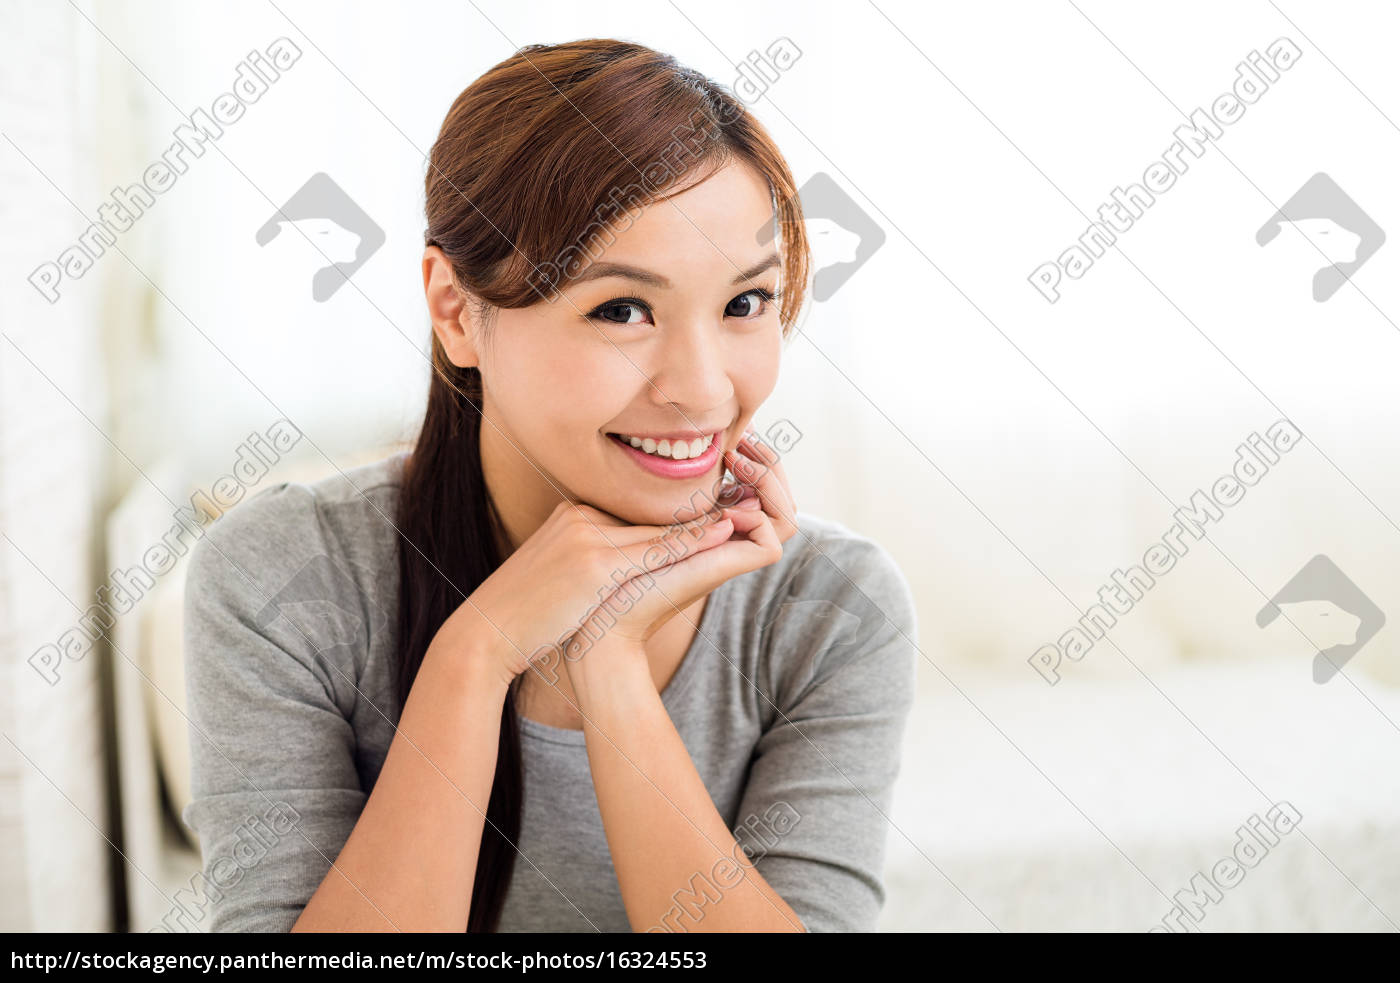 young, woman, smiling - 16324553